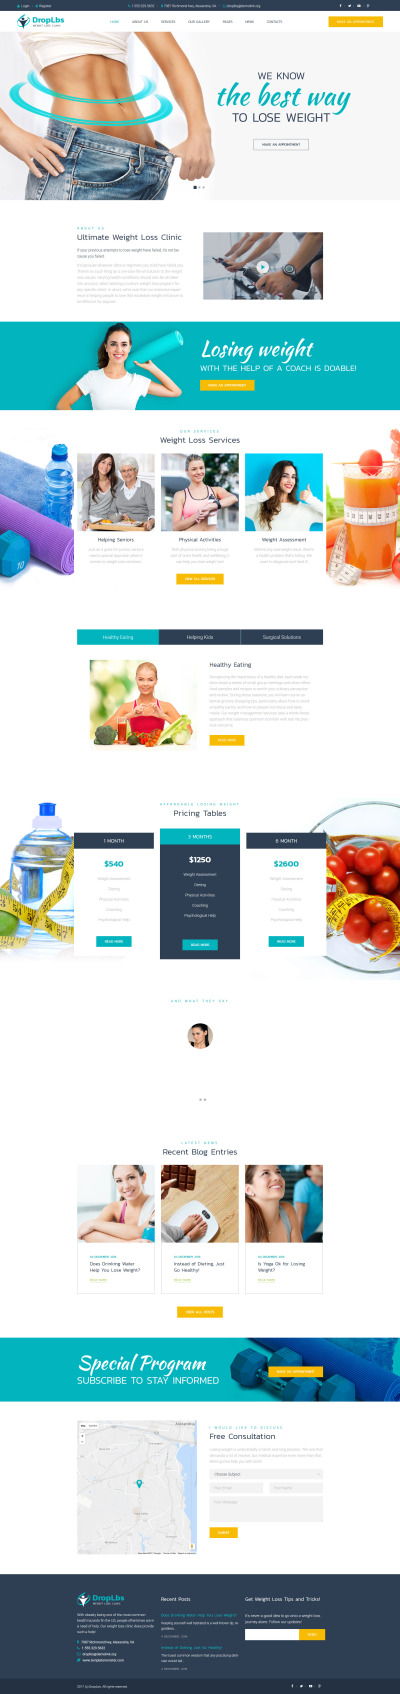 DropLbs - Weight Loss Clinic Responsive